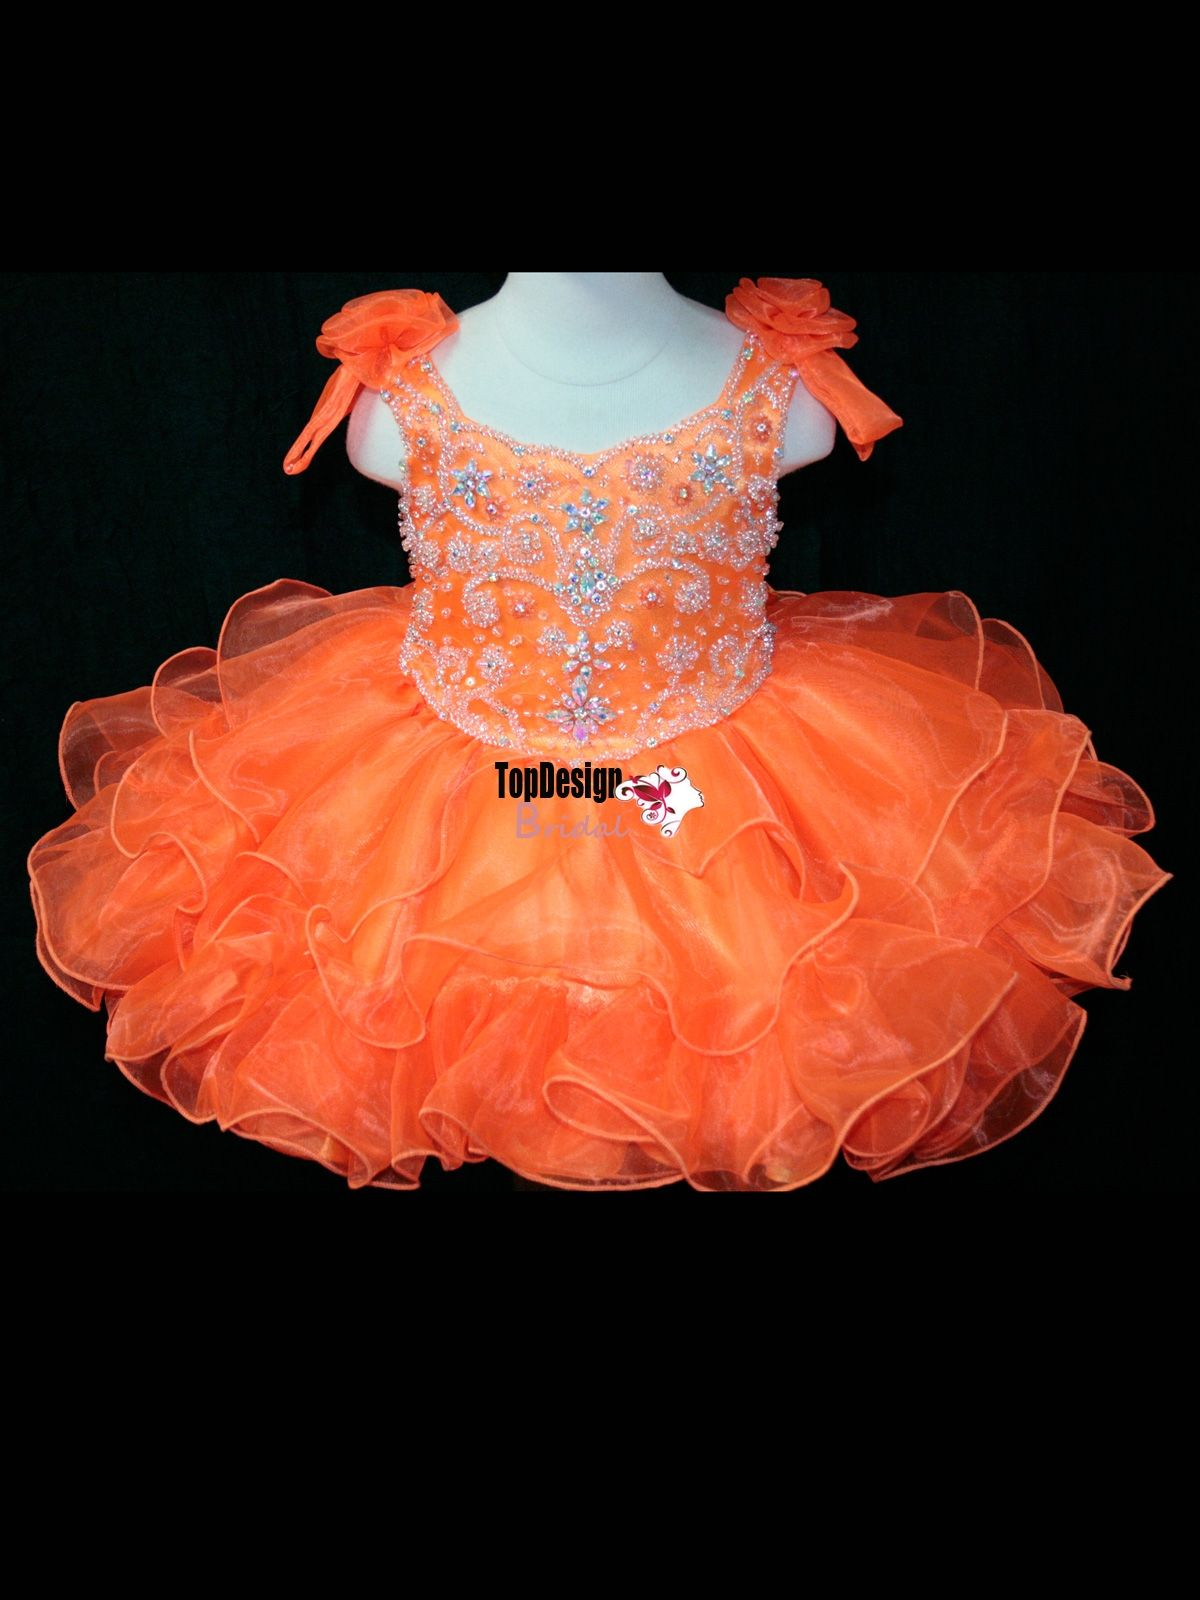 Infant toddle kids mini party pageant dress birthday cupcake dance ball gowns